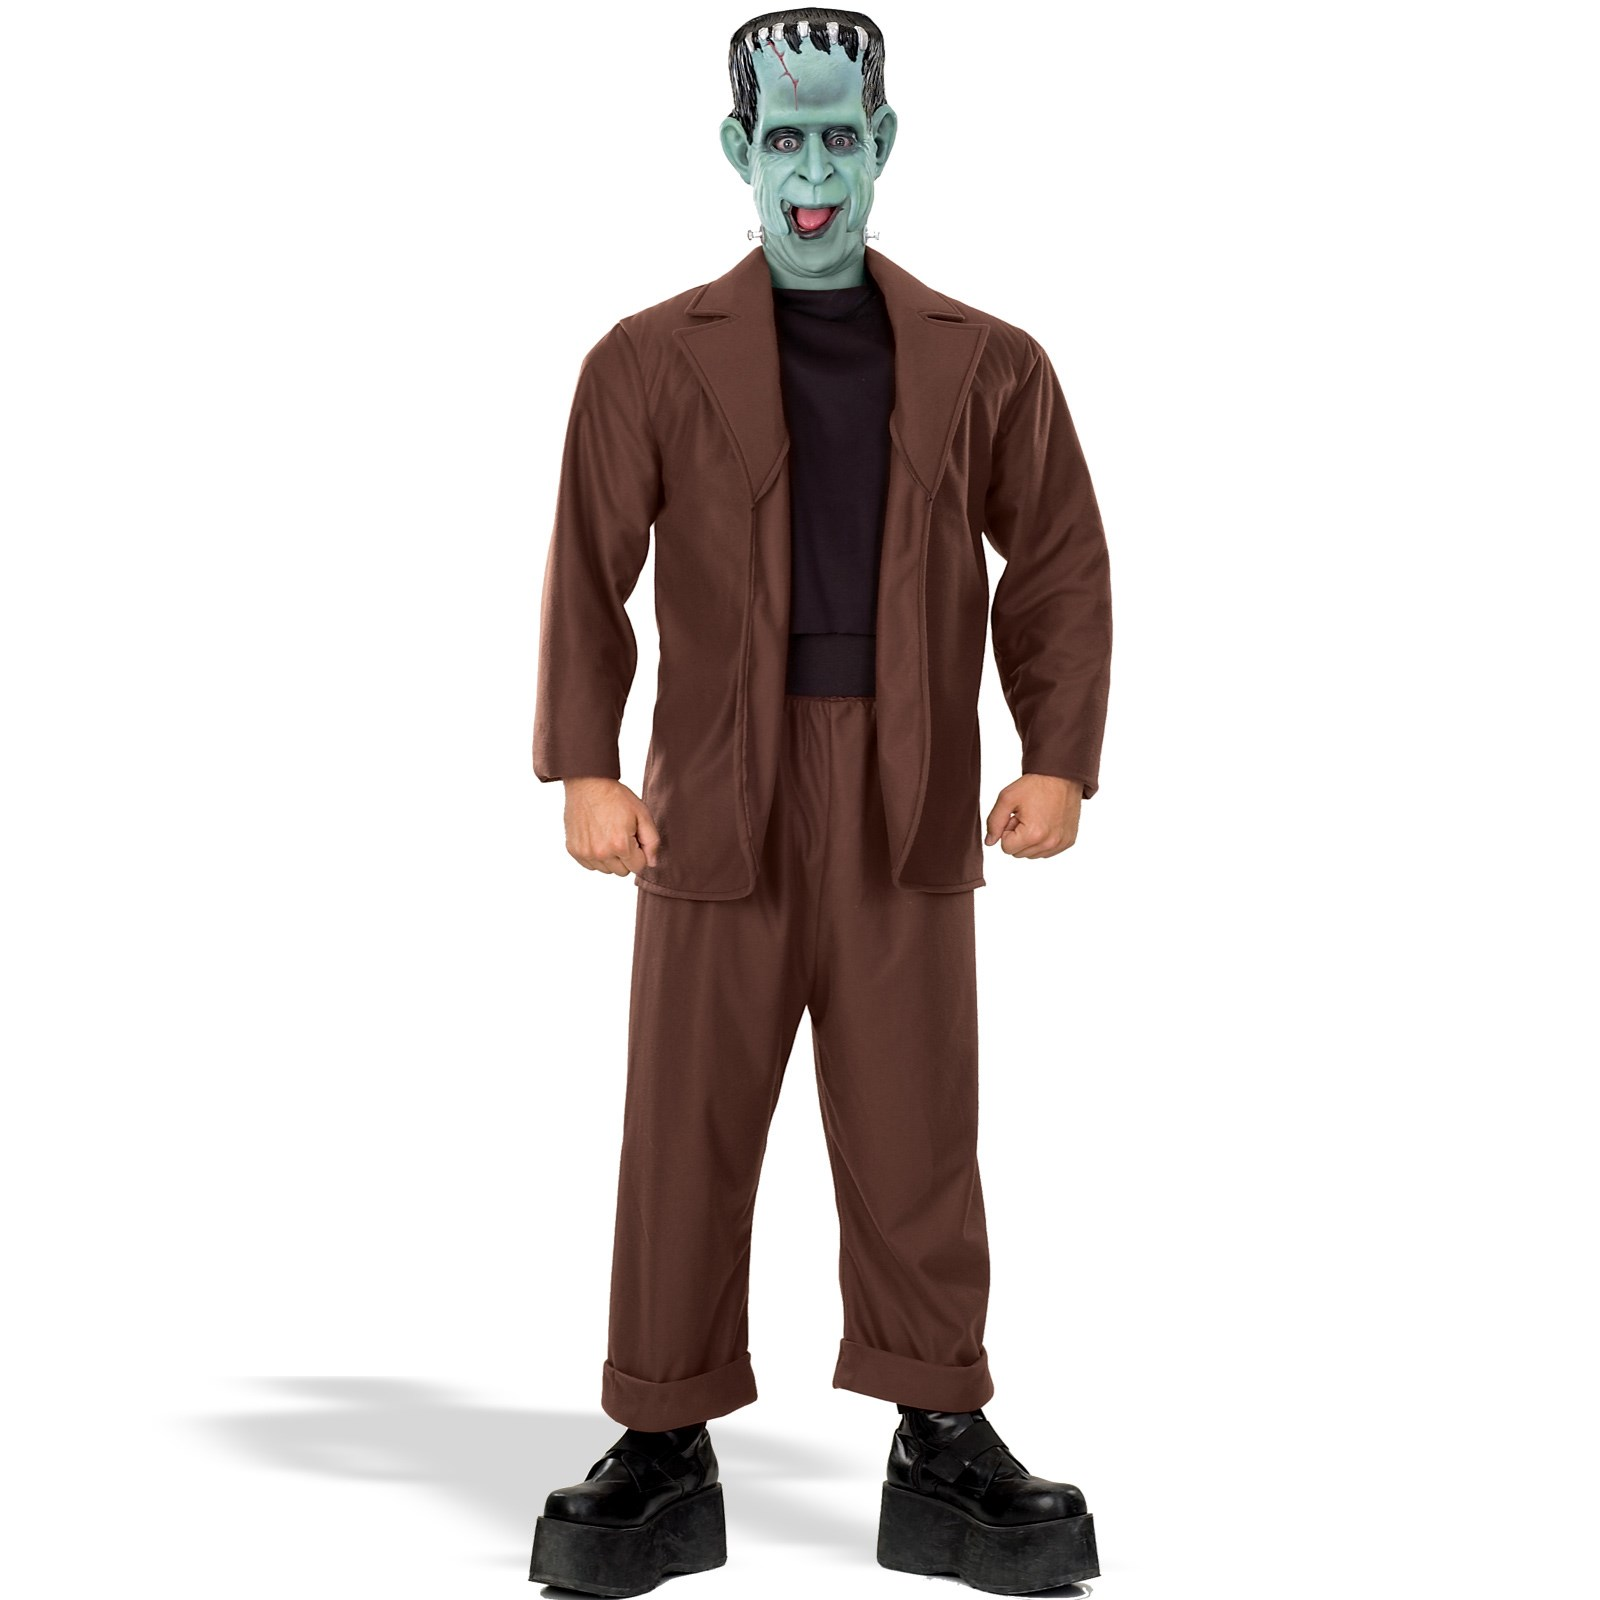 The Munsters Herman Munster Adult Costume